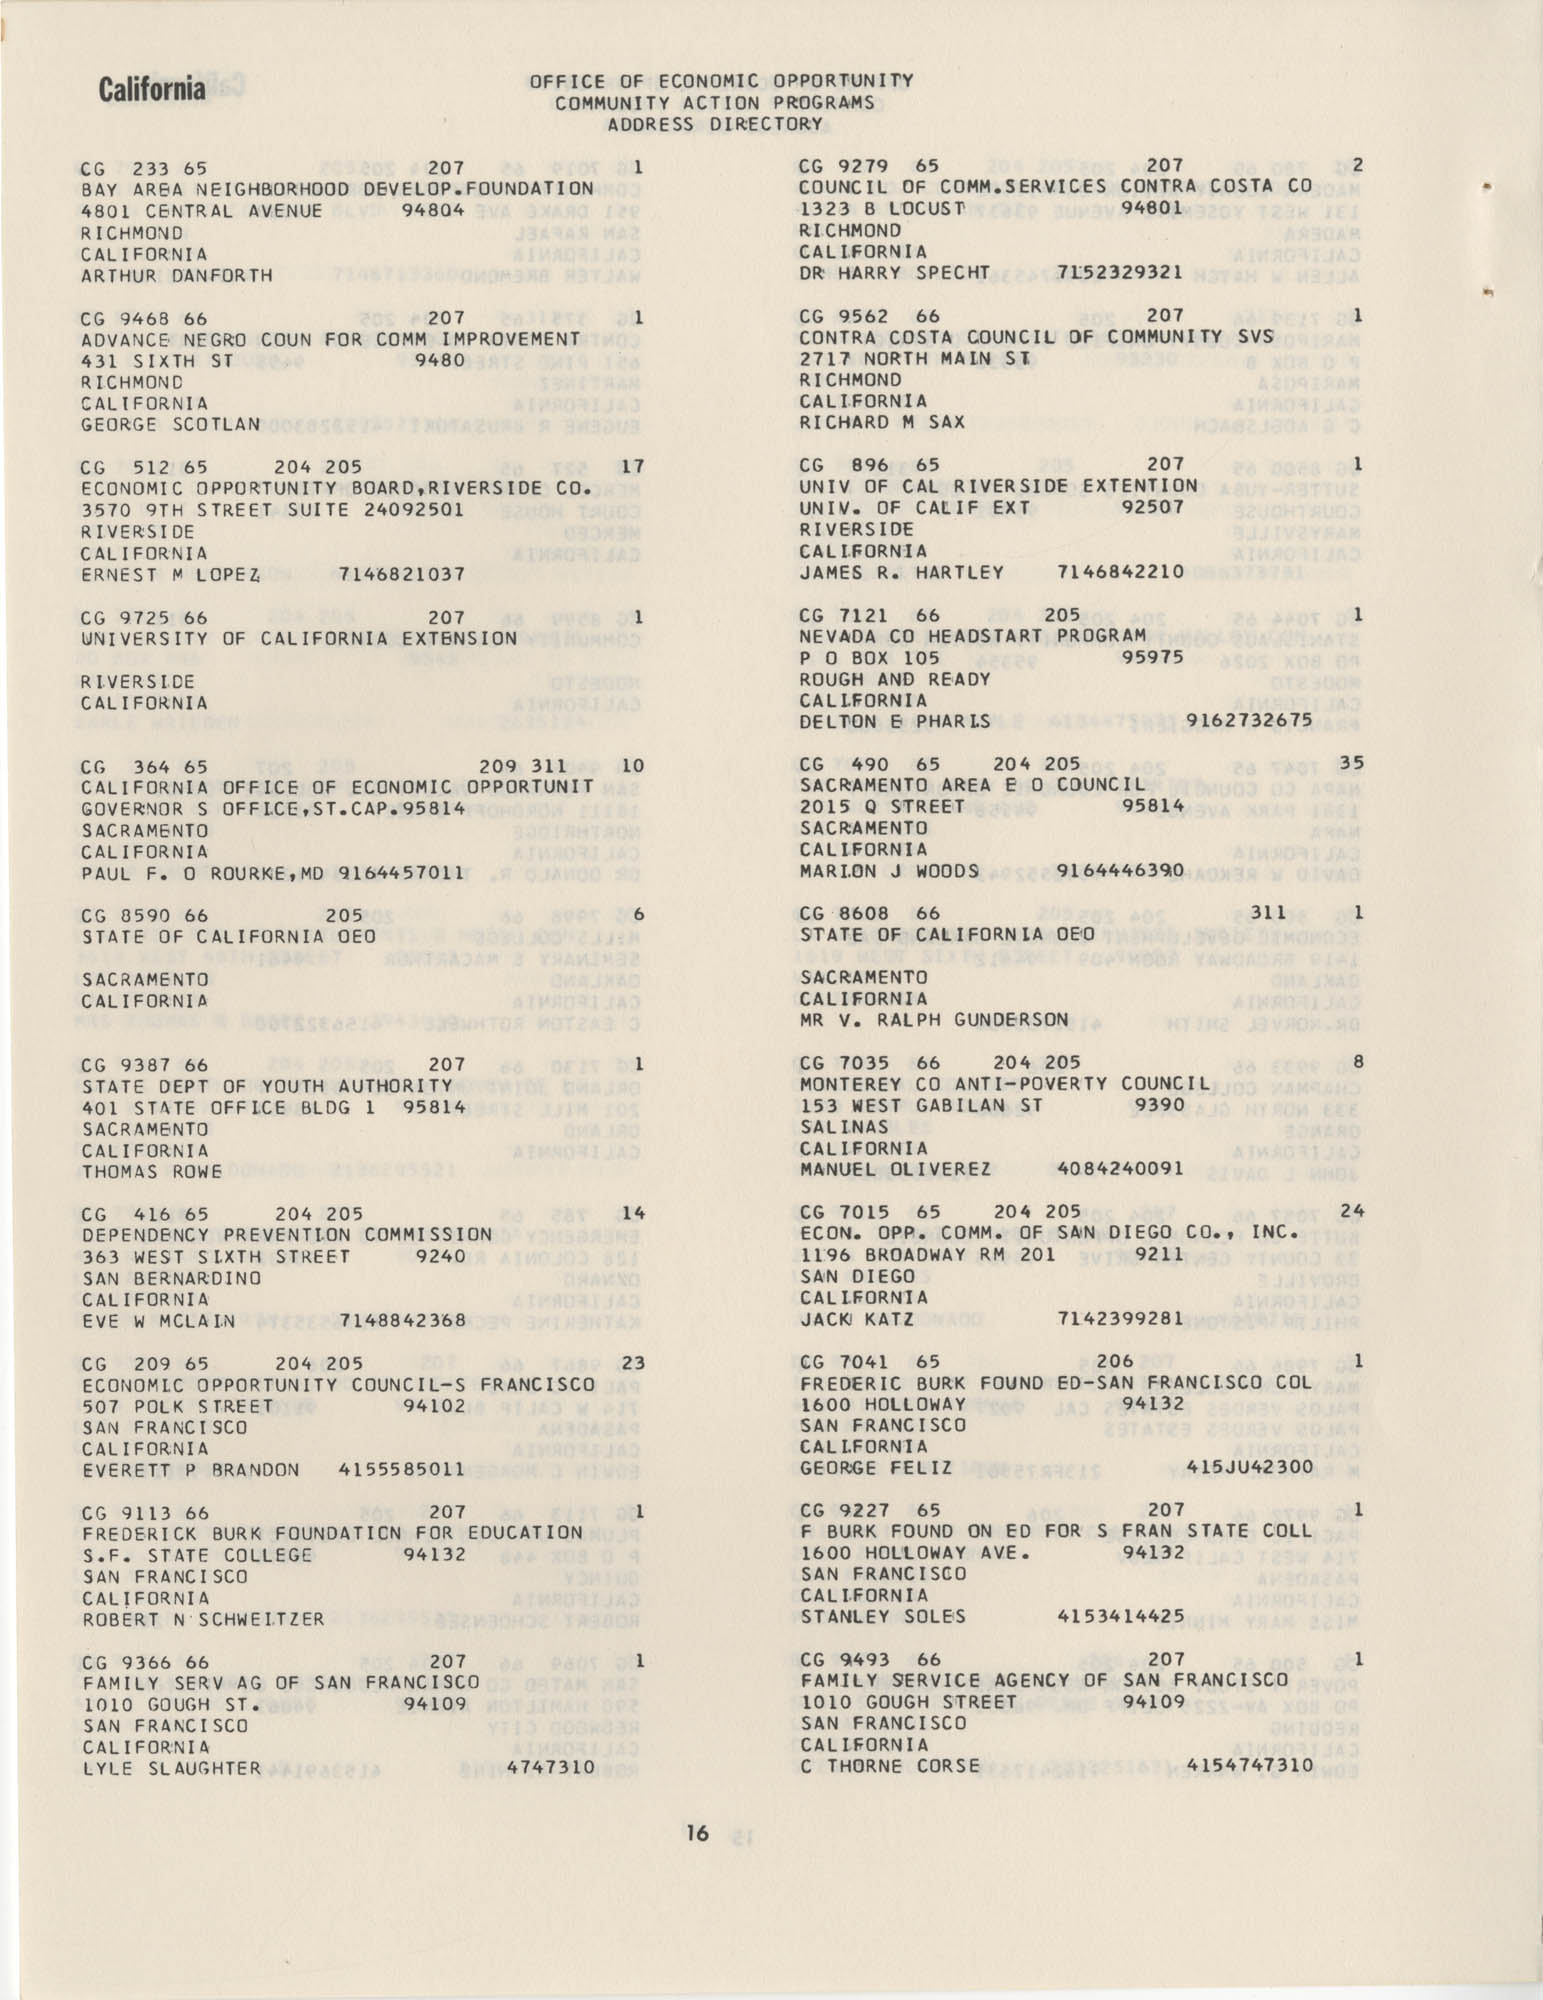 Community Action Programs Directory, June 15, 1966, Page 16